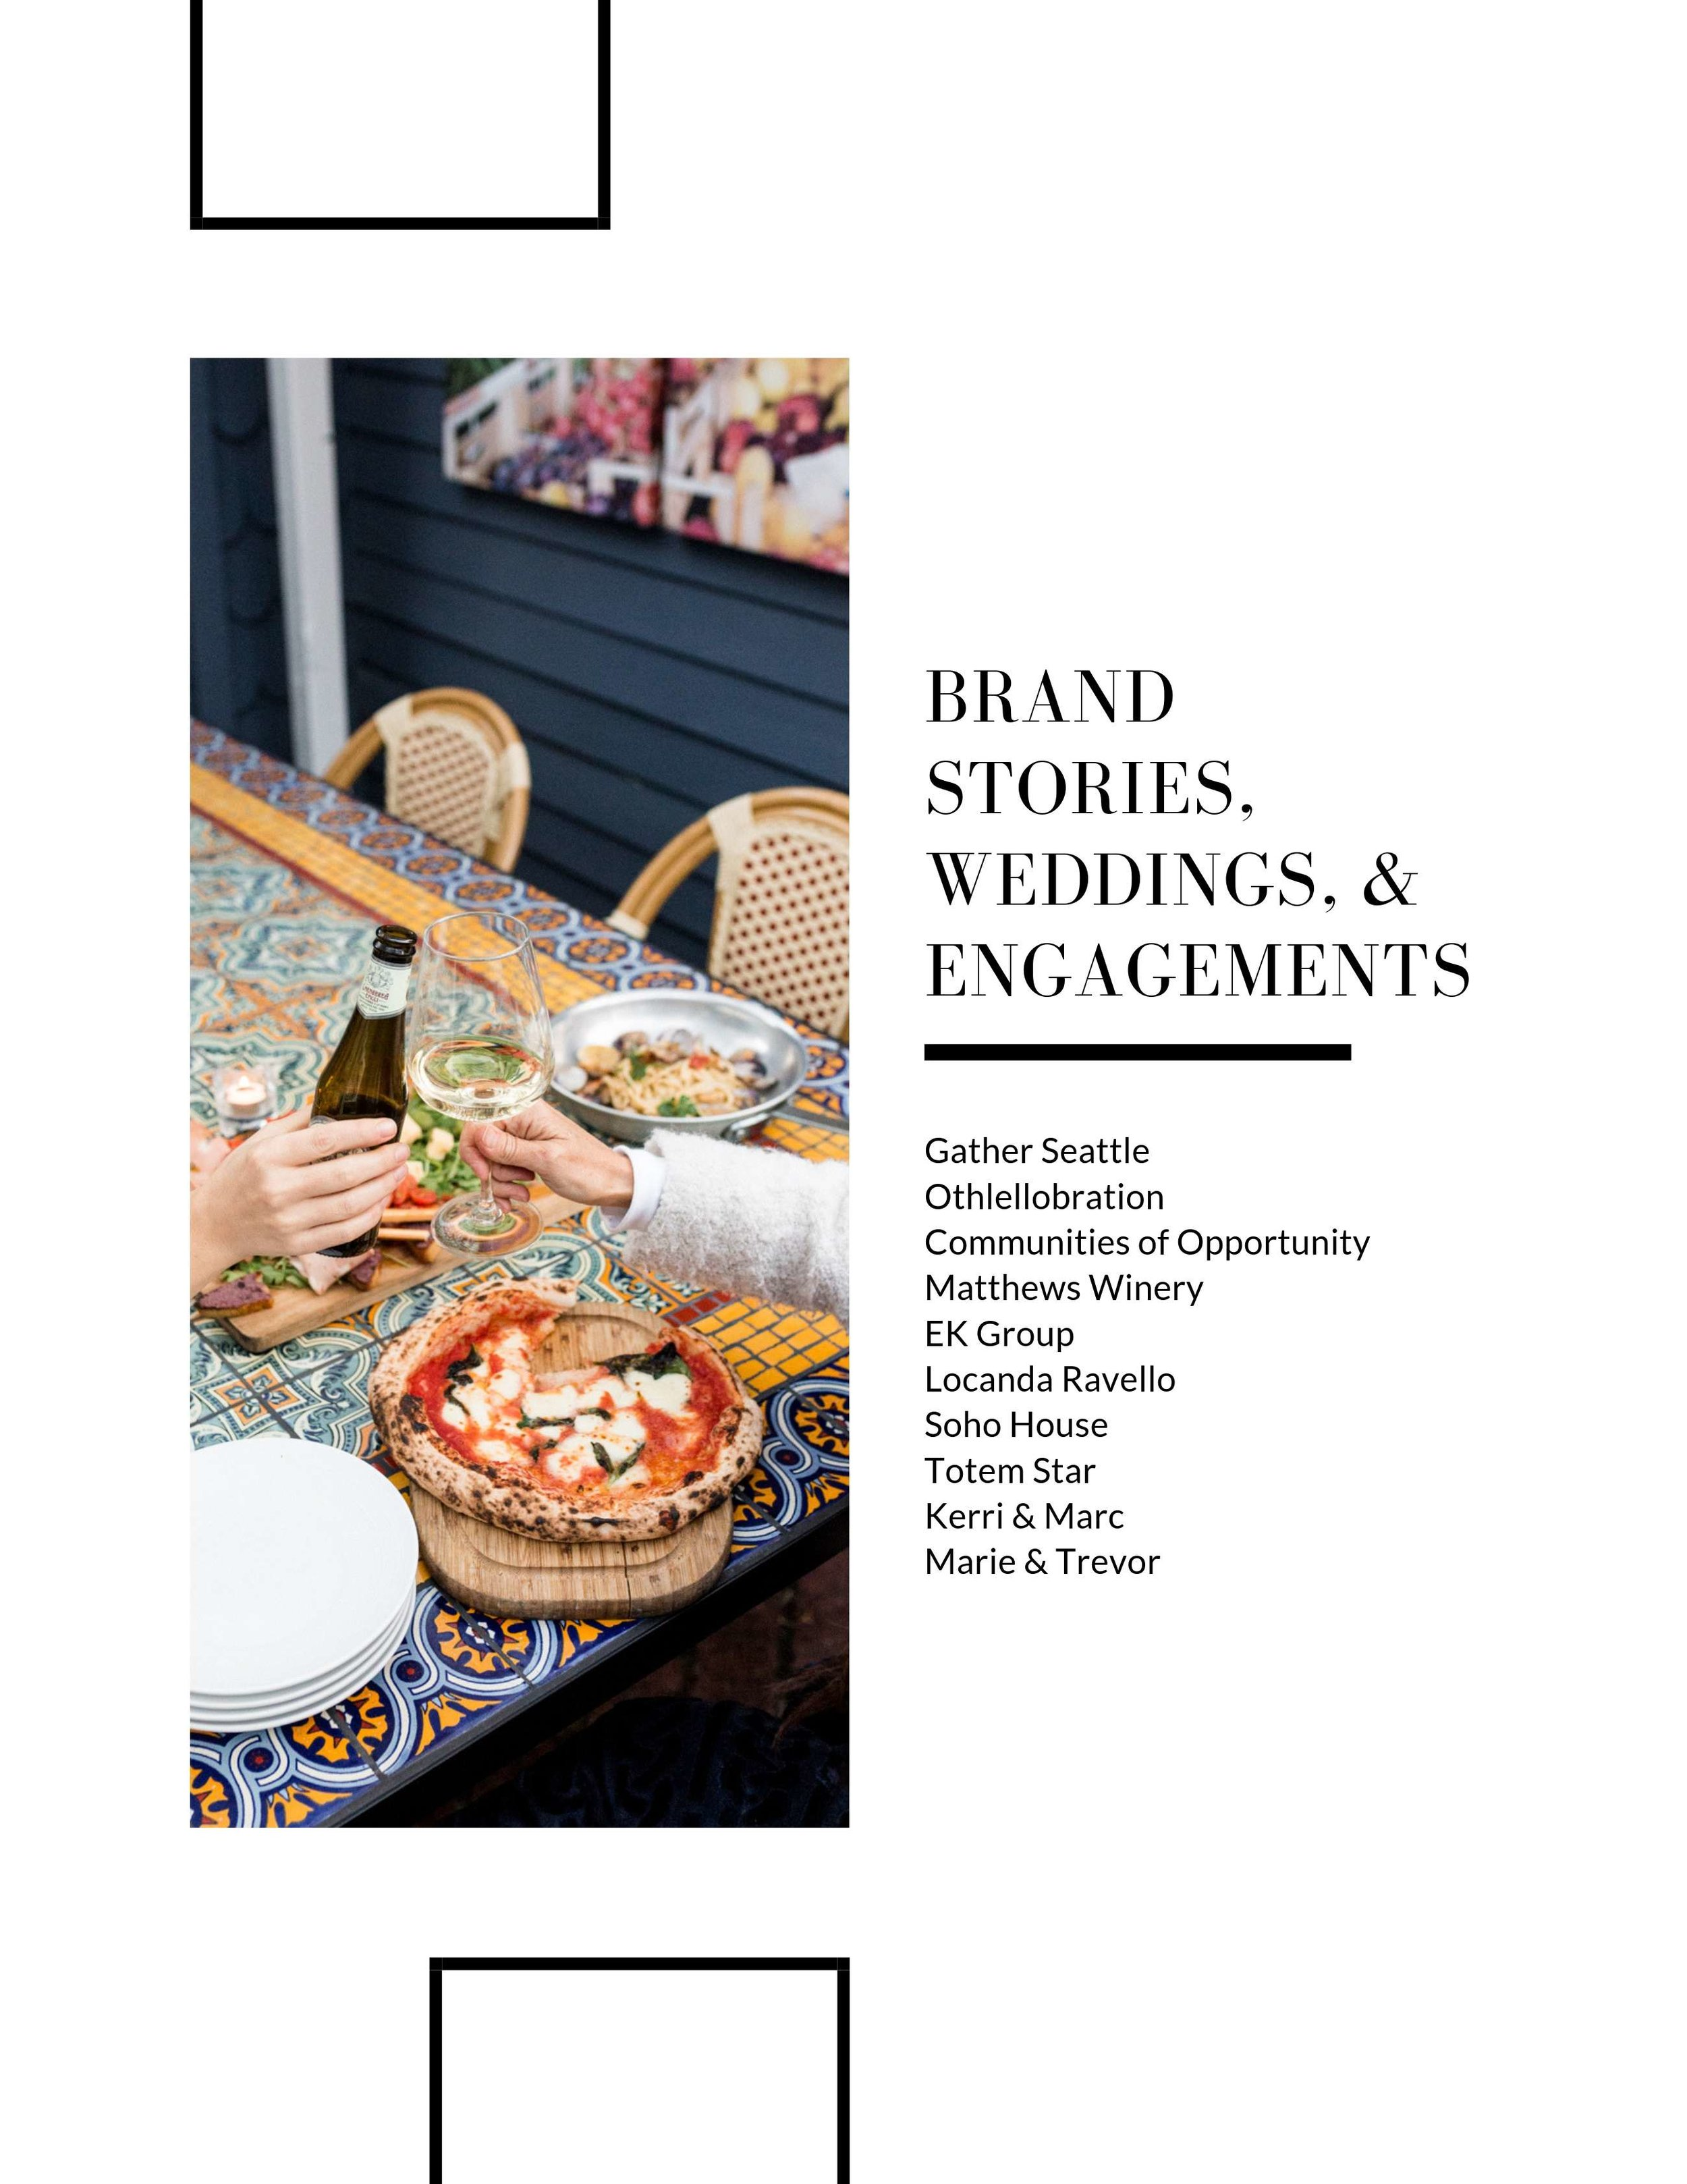 Large Brand Stories and Weddings.jpg